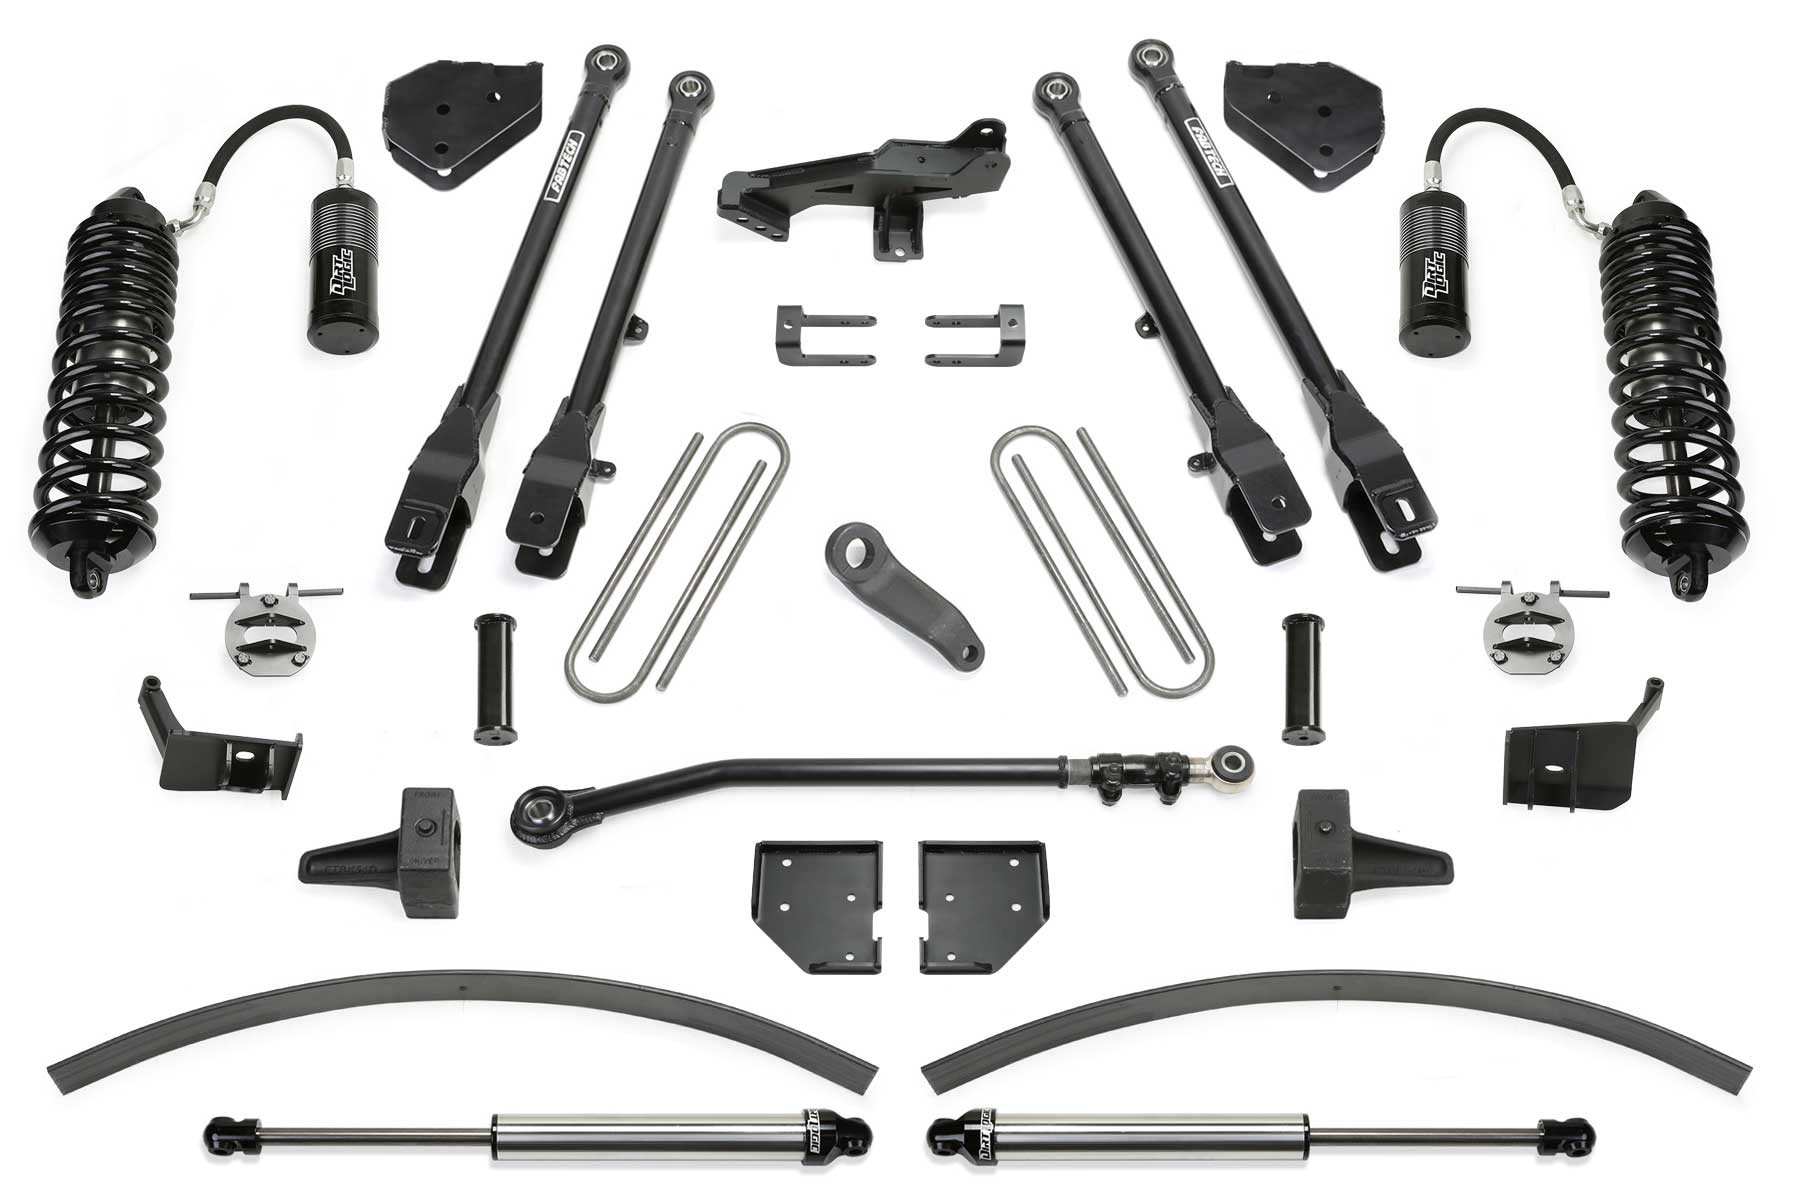 FABTECH 2017-18 Ford F250/ F350 4WD-8″ 4 LINK SYSTEM W/ FRONT DIRT LOGIC 4.0 RESI COILOVERS & REAR DIRT LOGIC 2.25 SHOCKS